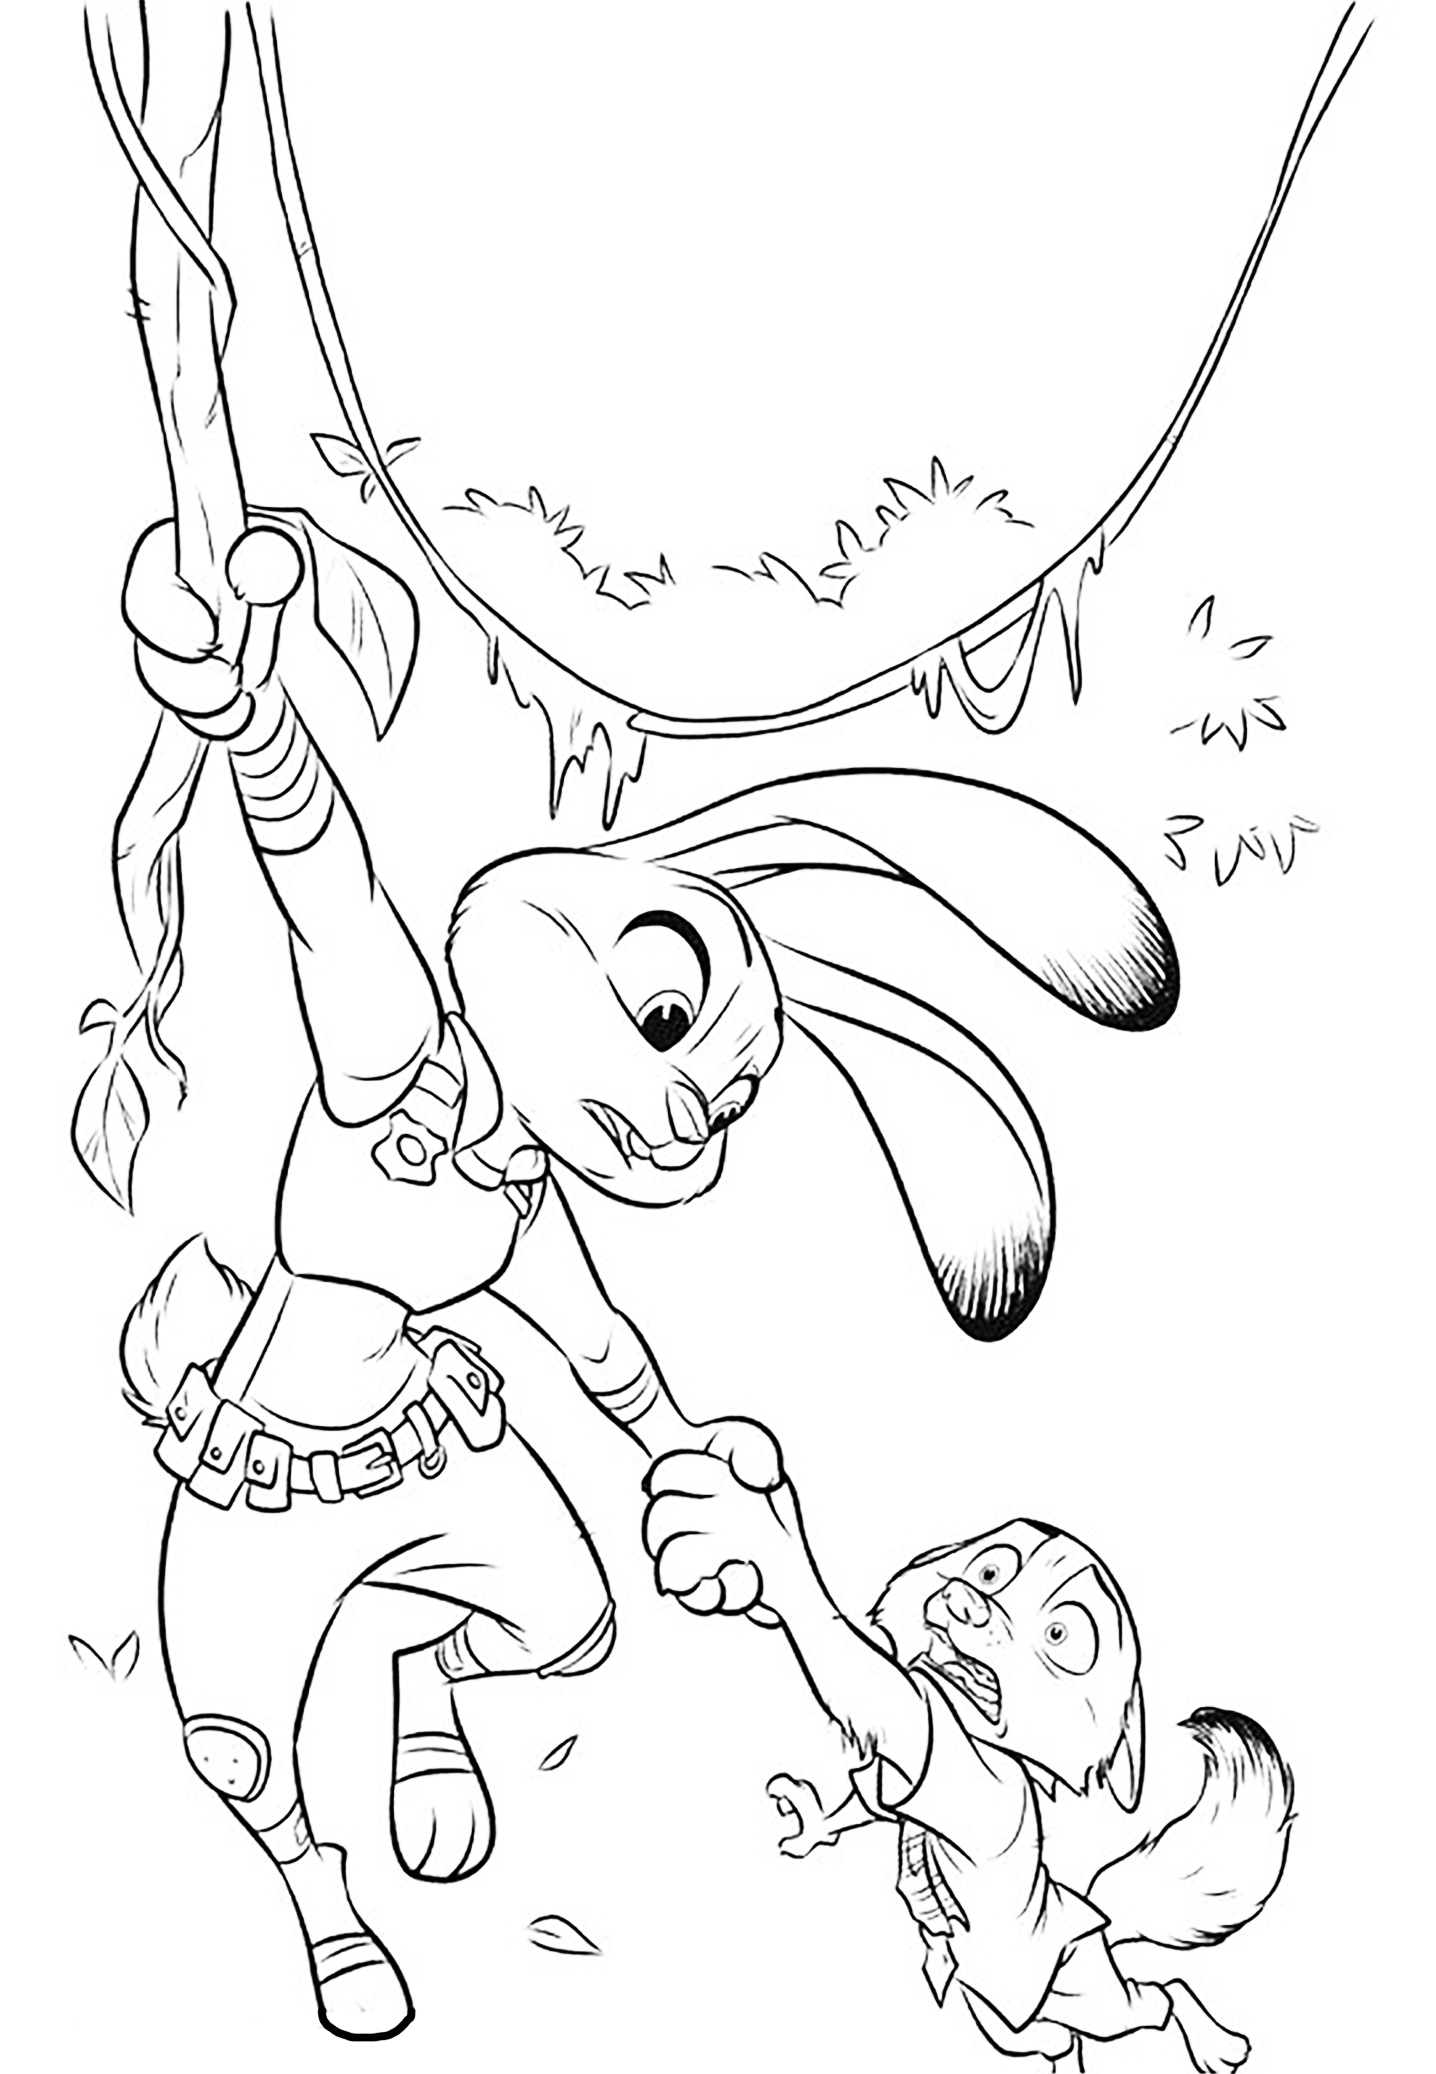 Incredible Zootopia coloring page to print and color for free : Judy Hopps helping her friend